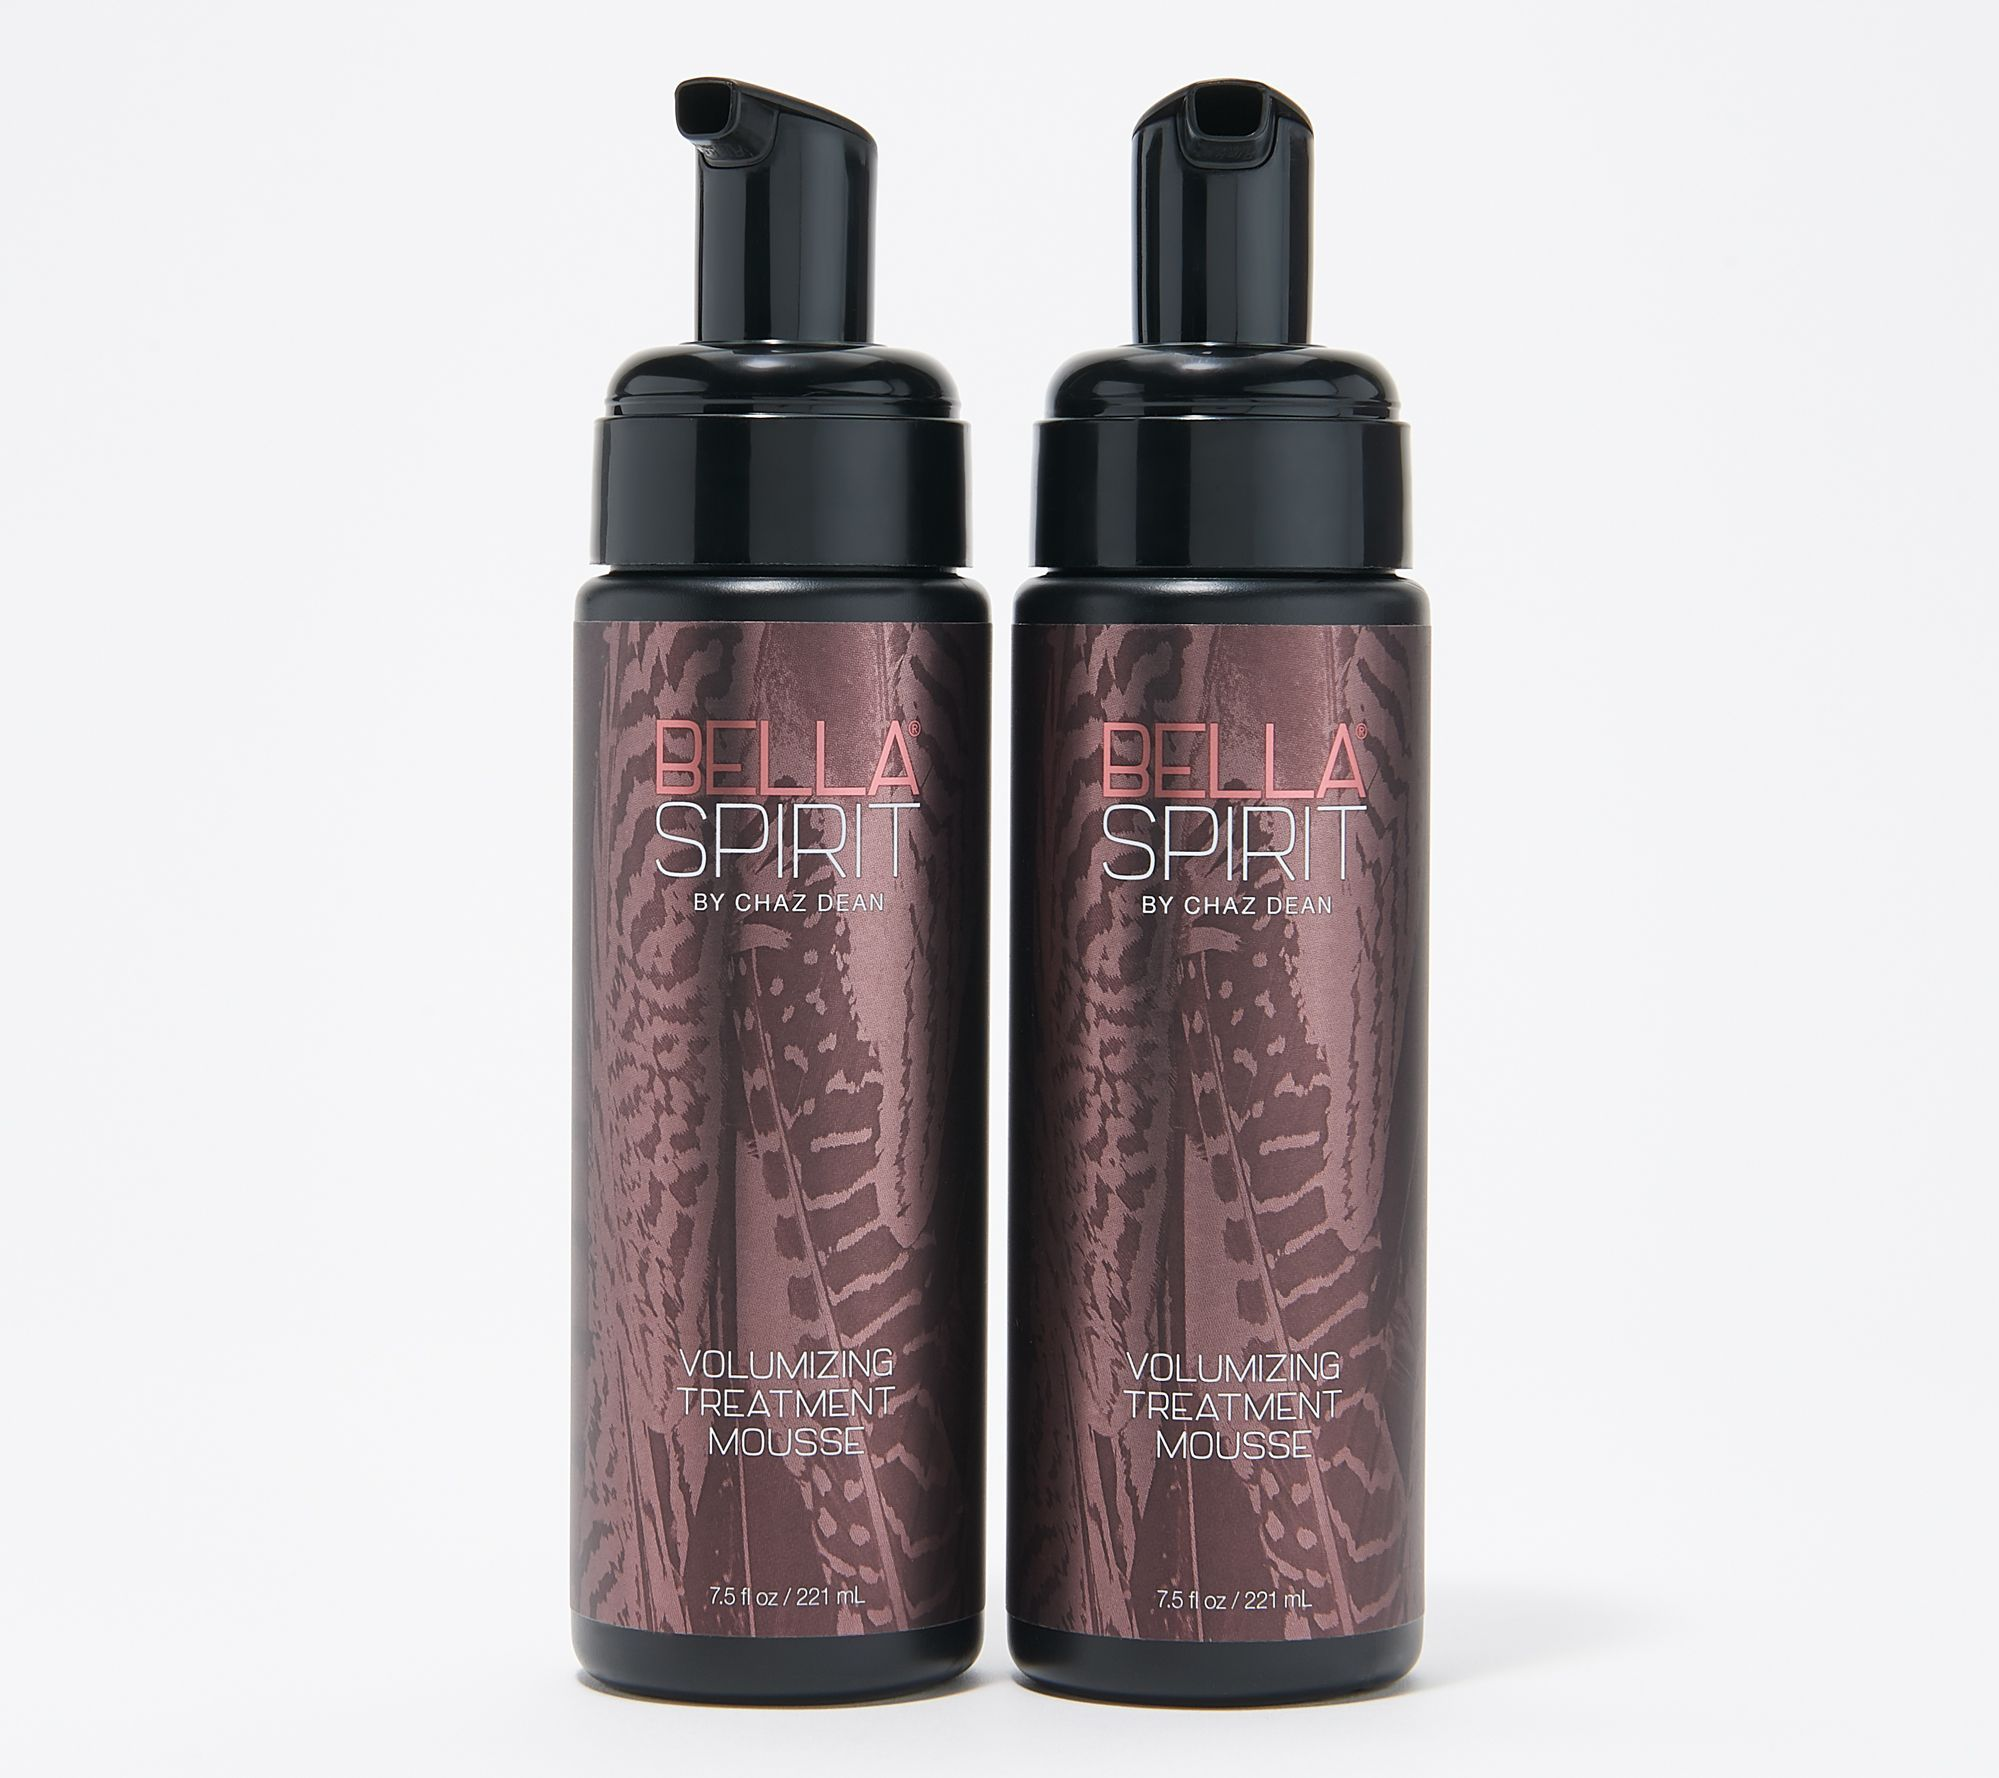 WEN by Chaz Dean Bella Spirit 7.5oz Volumizing Mousse Duo